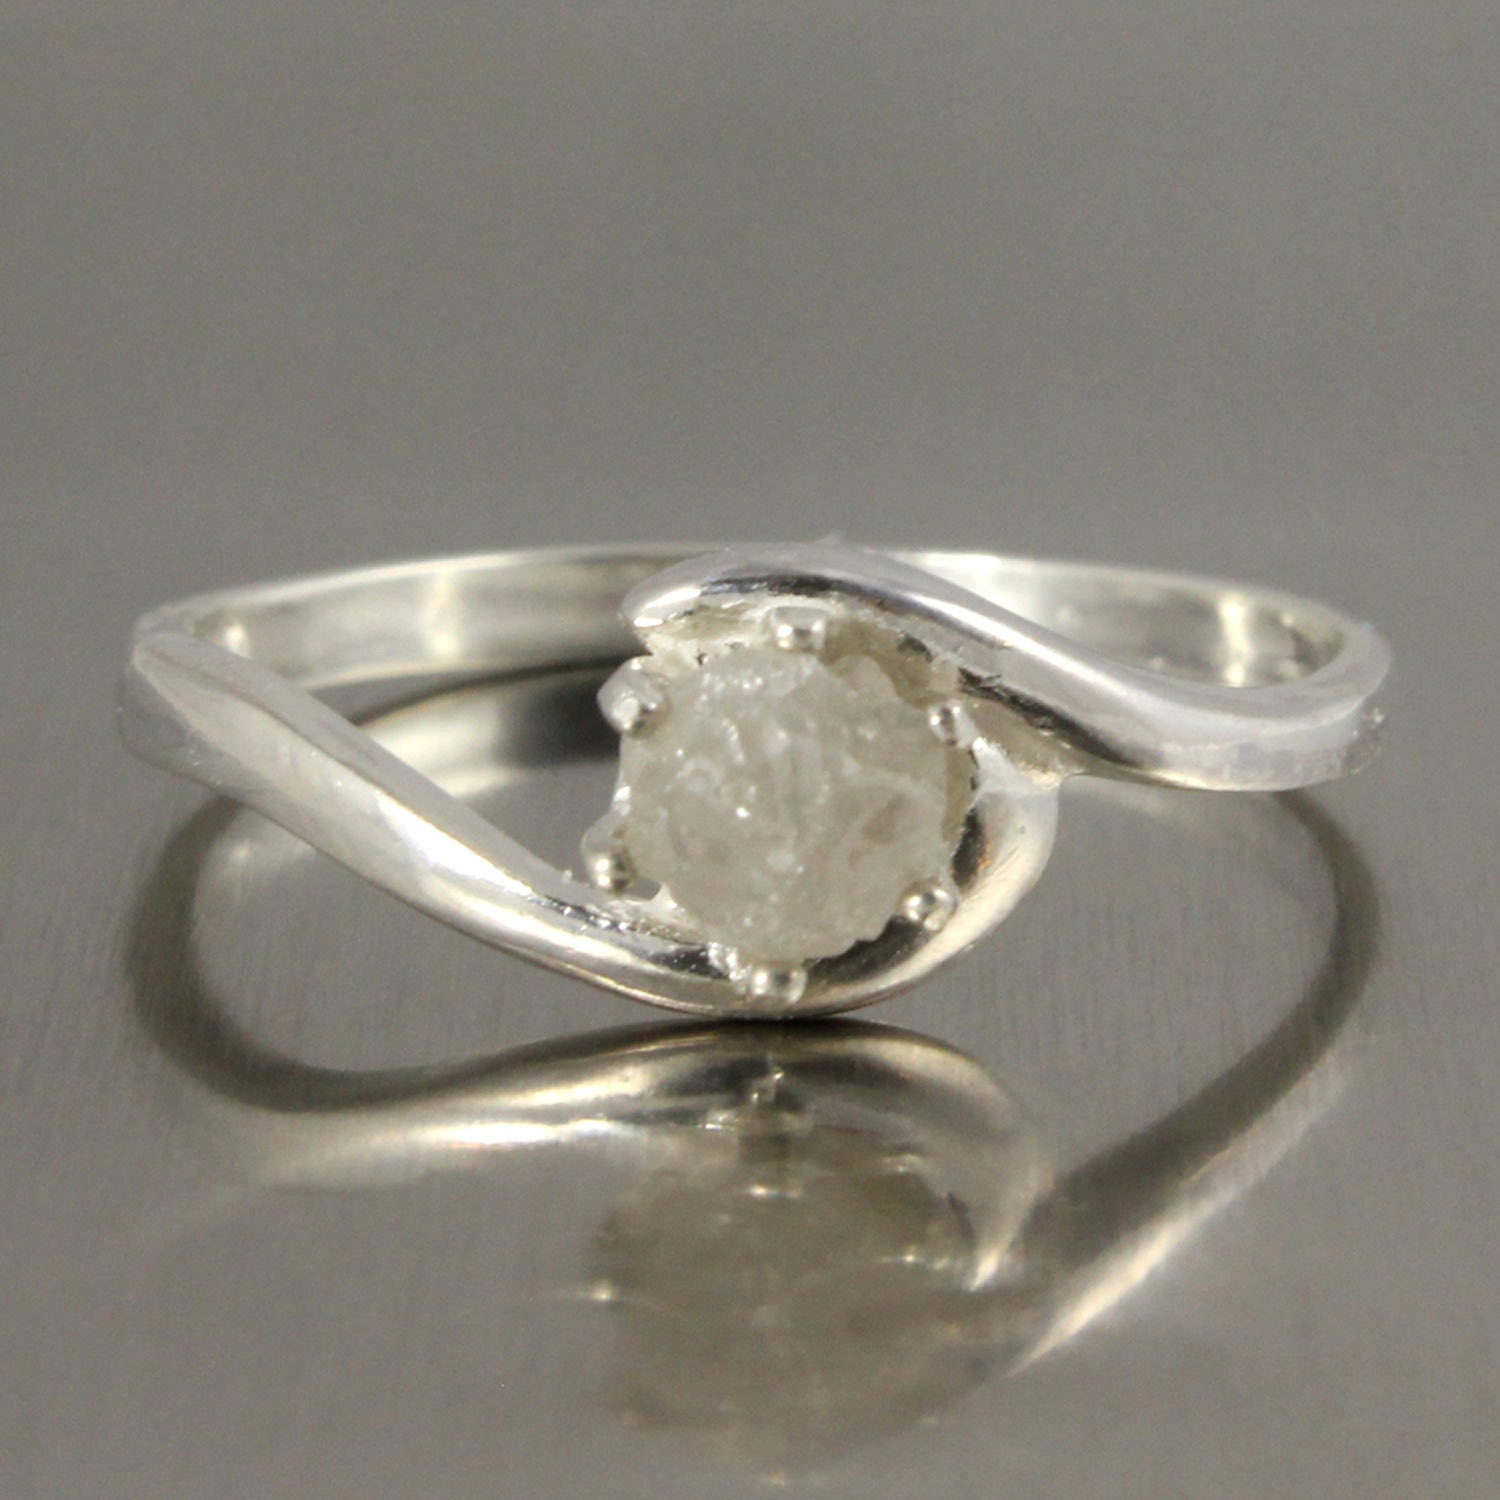 Uncut Diamond Ring Etsy Ring Raw Uncut Diamond